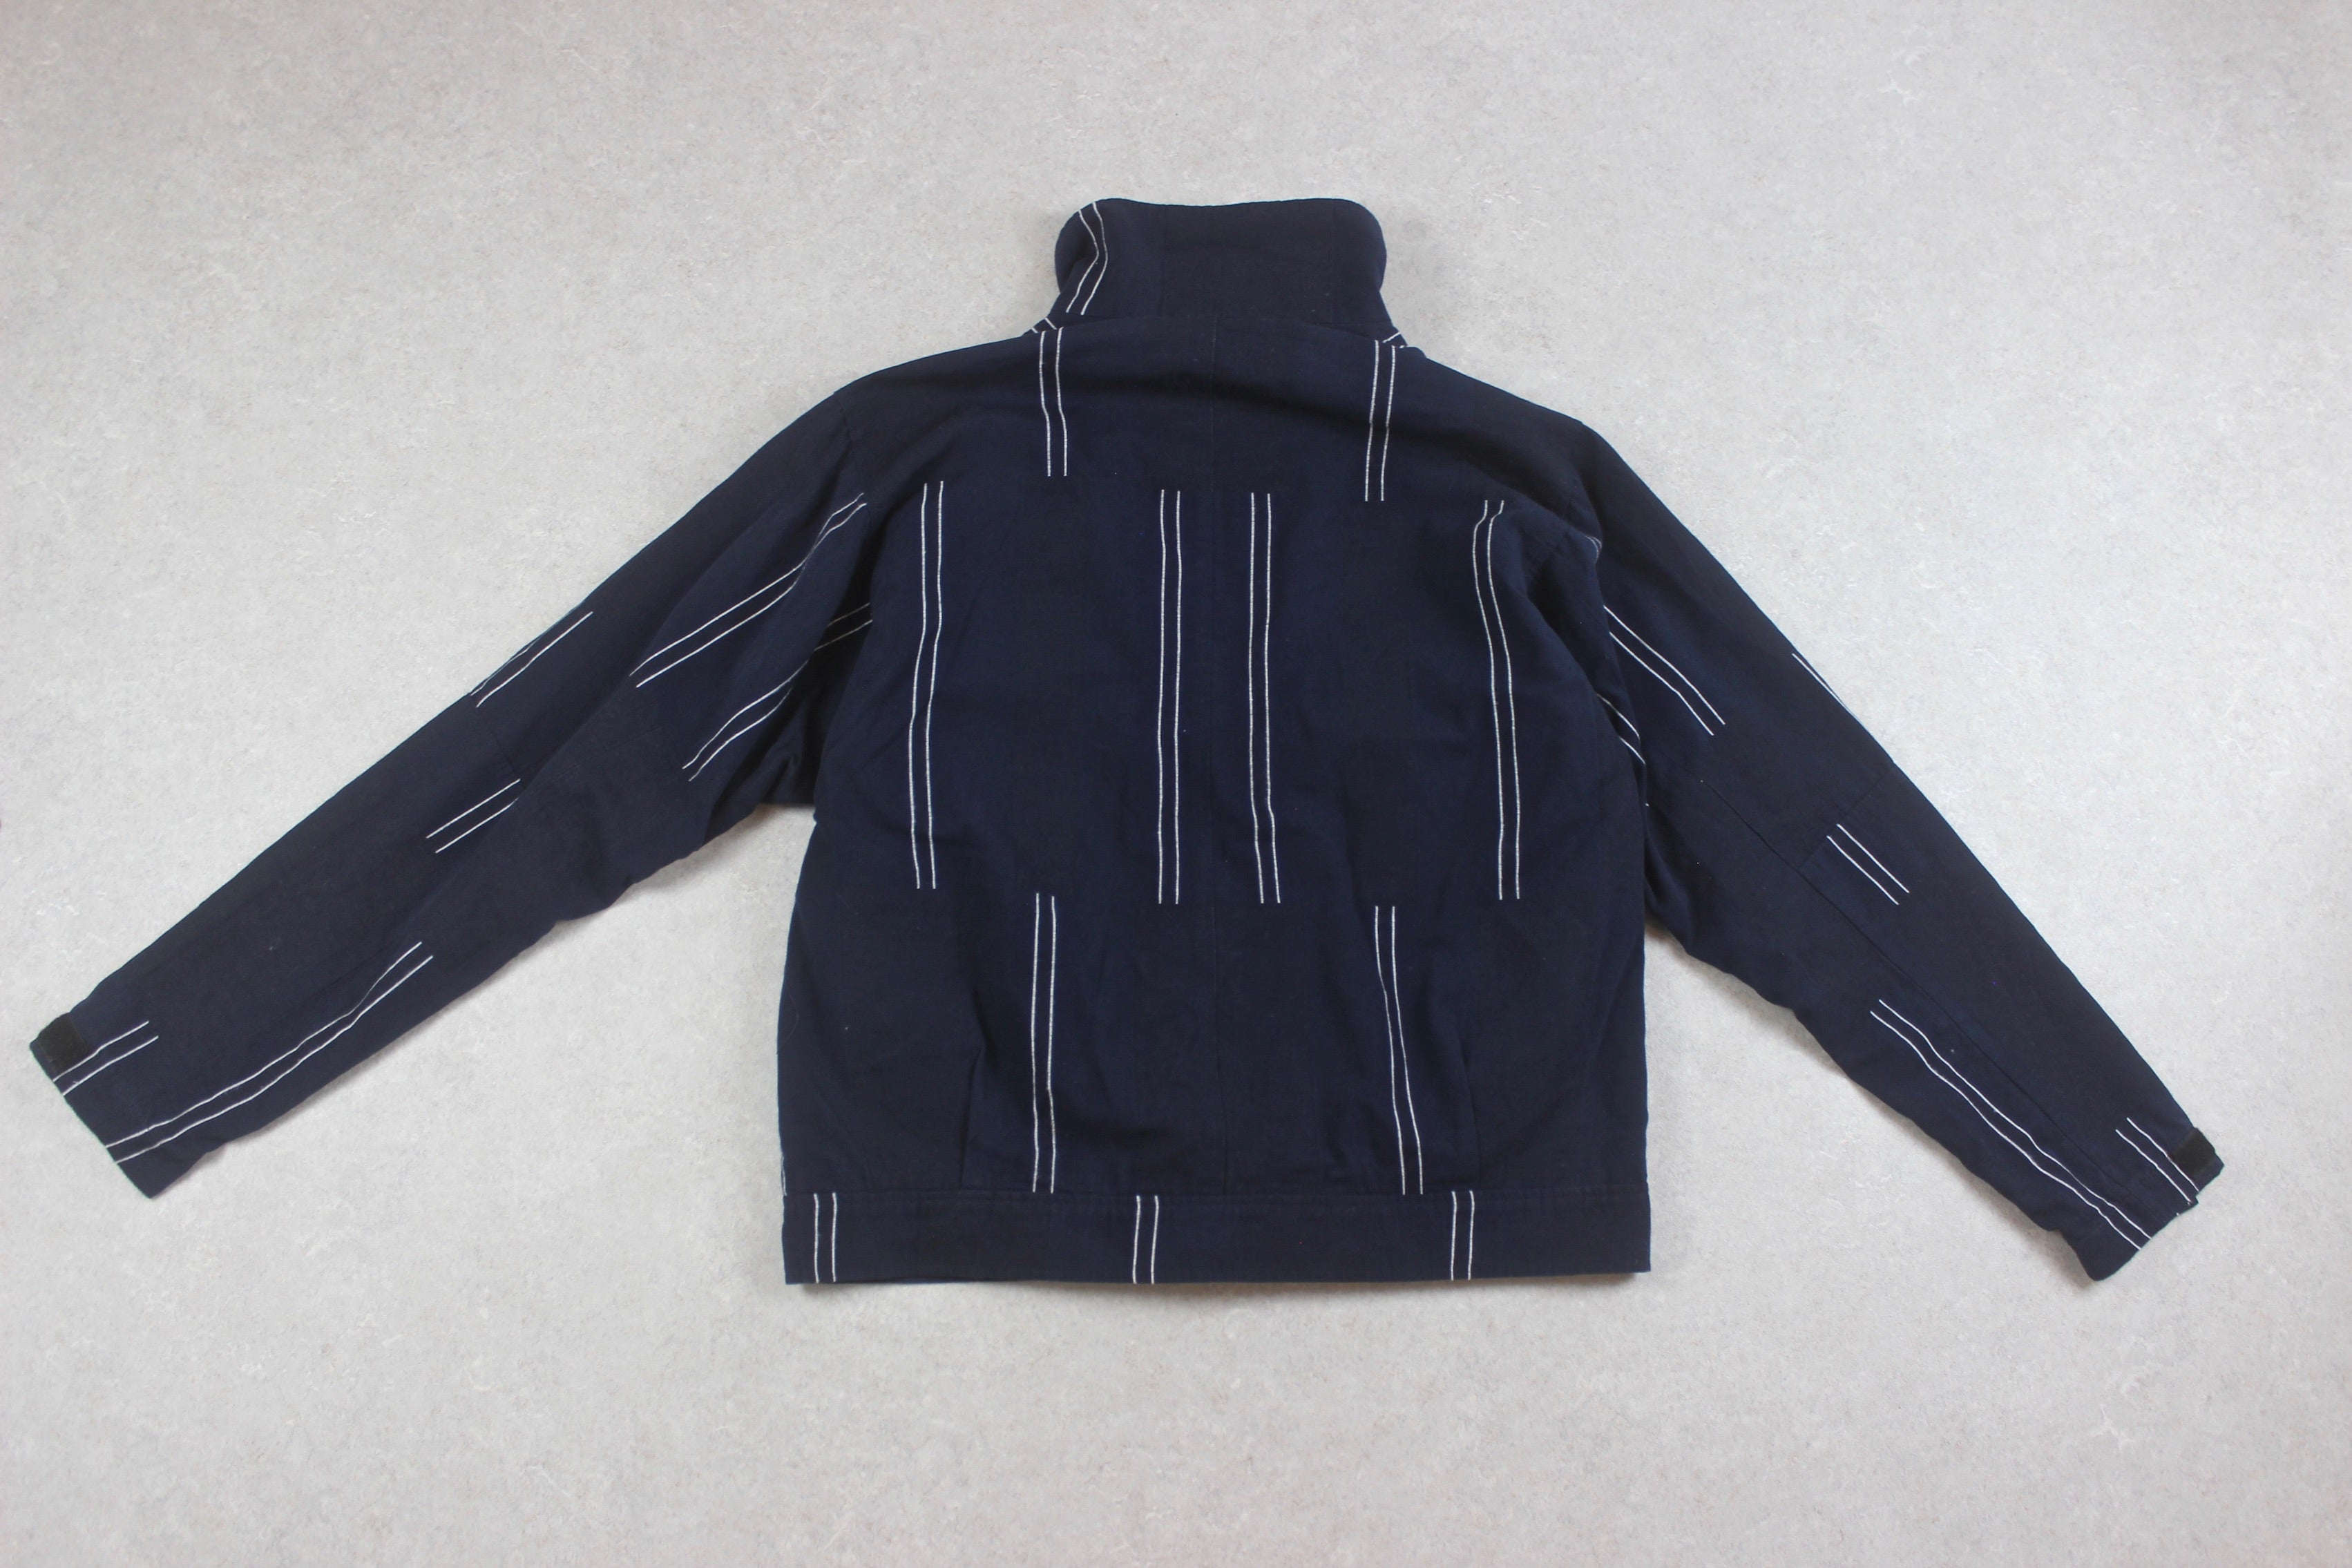 Oliver Spencer - Jacket - Navy Blue Stripe - 44/Extra Large